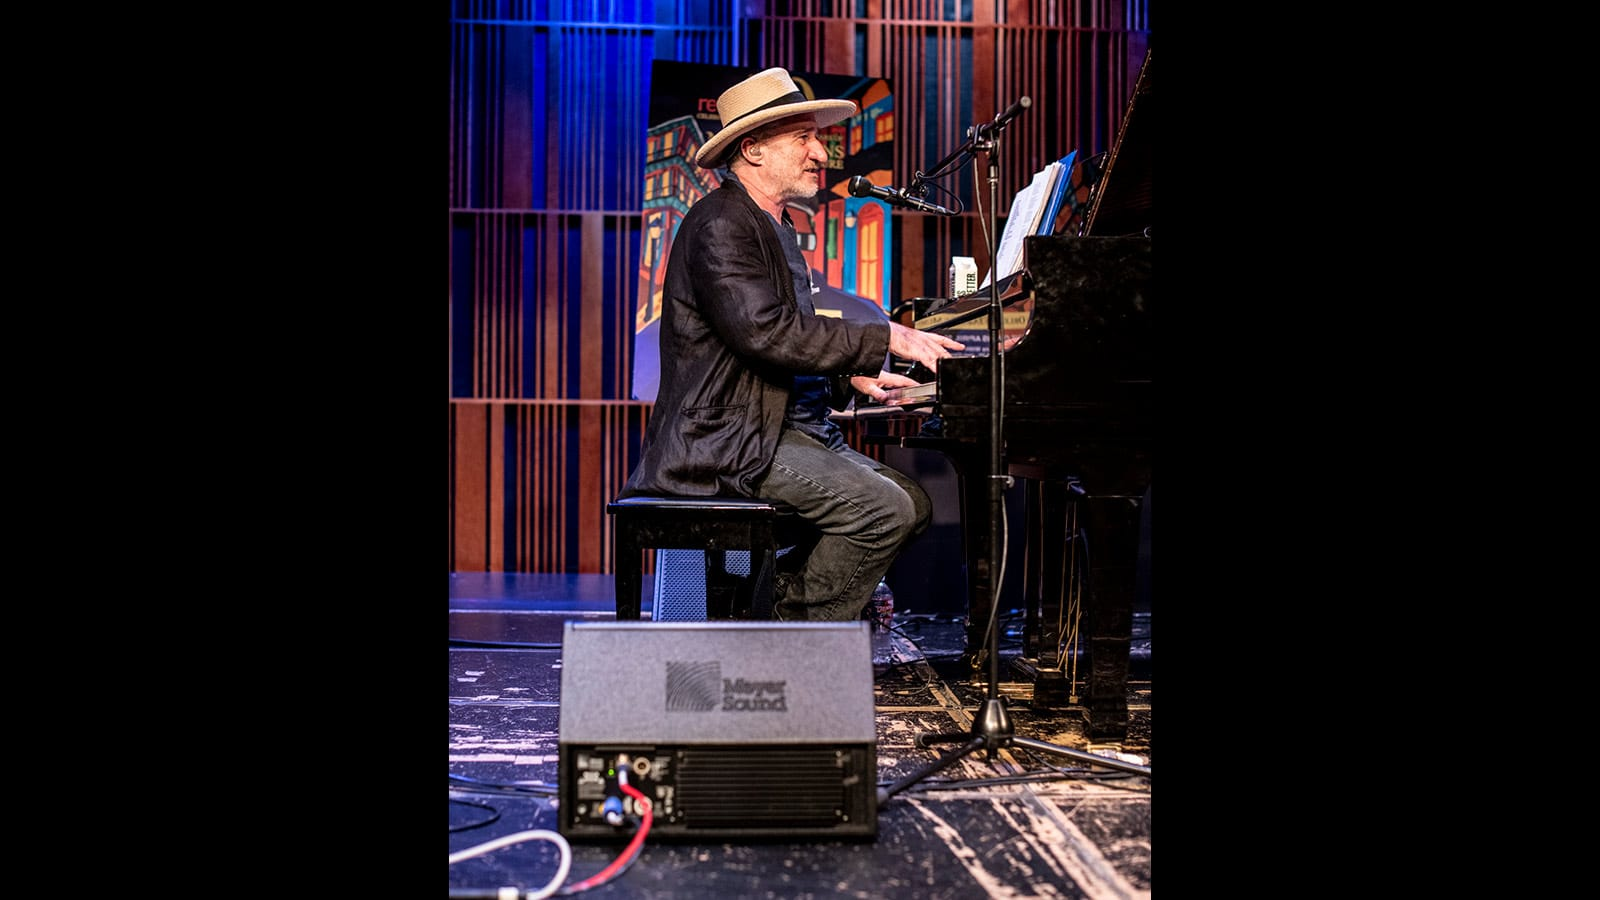 Pianist and bandleader Jon Cleary